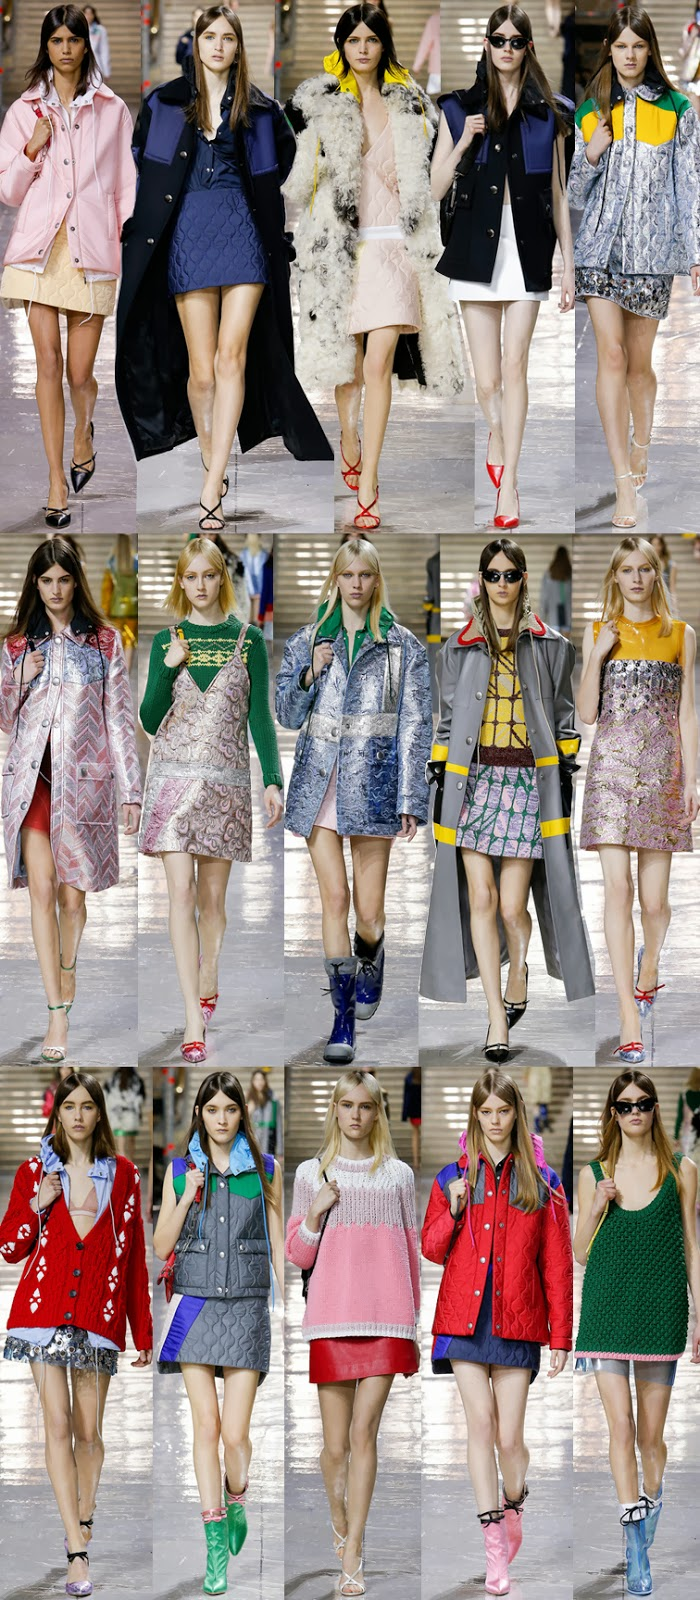 Miu Miu fall winter 2014 runway collection, PFW, Paris fashion week, FW14, AW14, Miuccia Prada